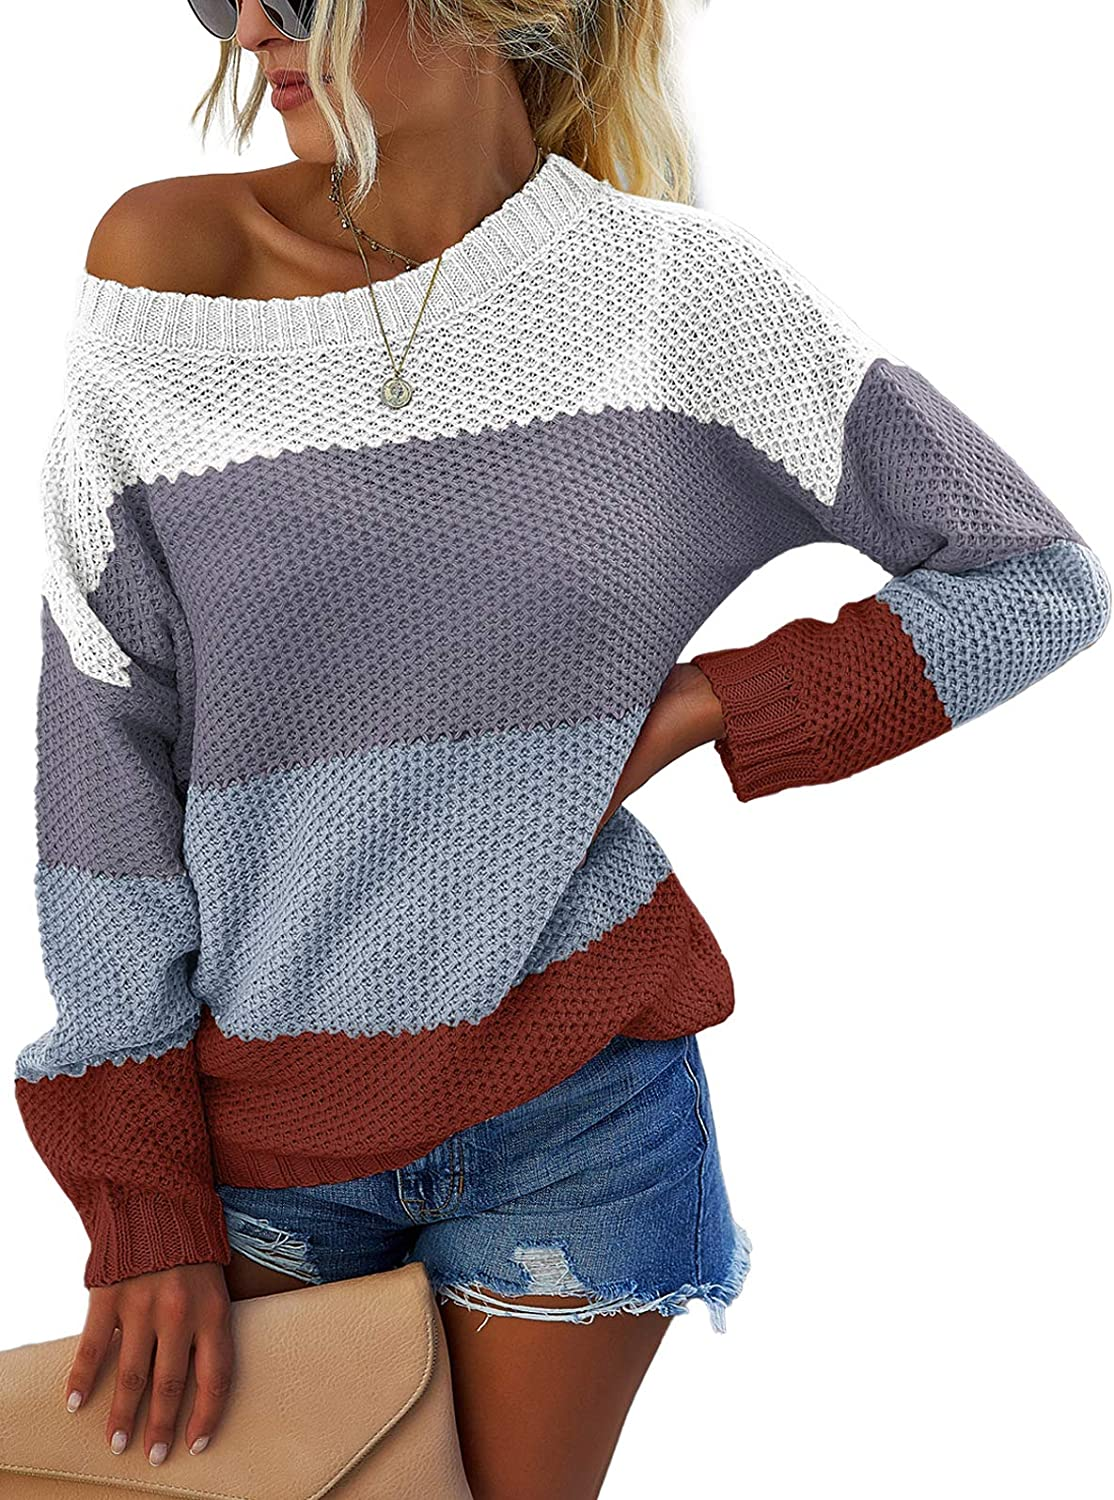 Adibosy Womens Crew Neck Sweater Color Block Sweaters Long Sleeve Striped Knit Loose Pullover Tops,Sweaters for Women